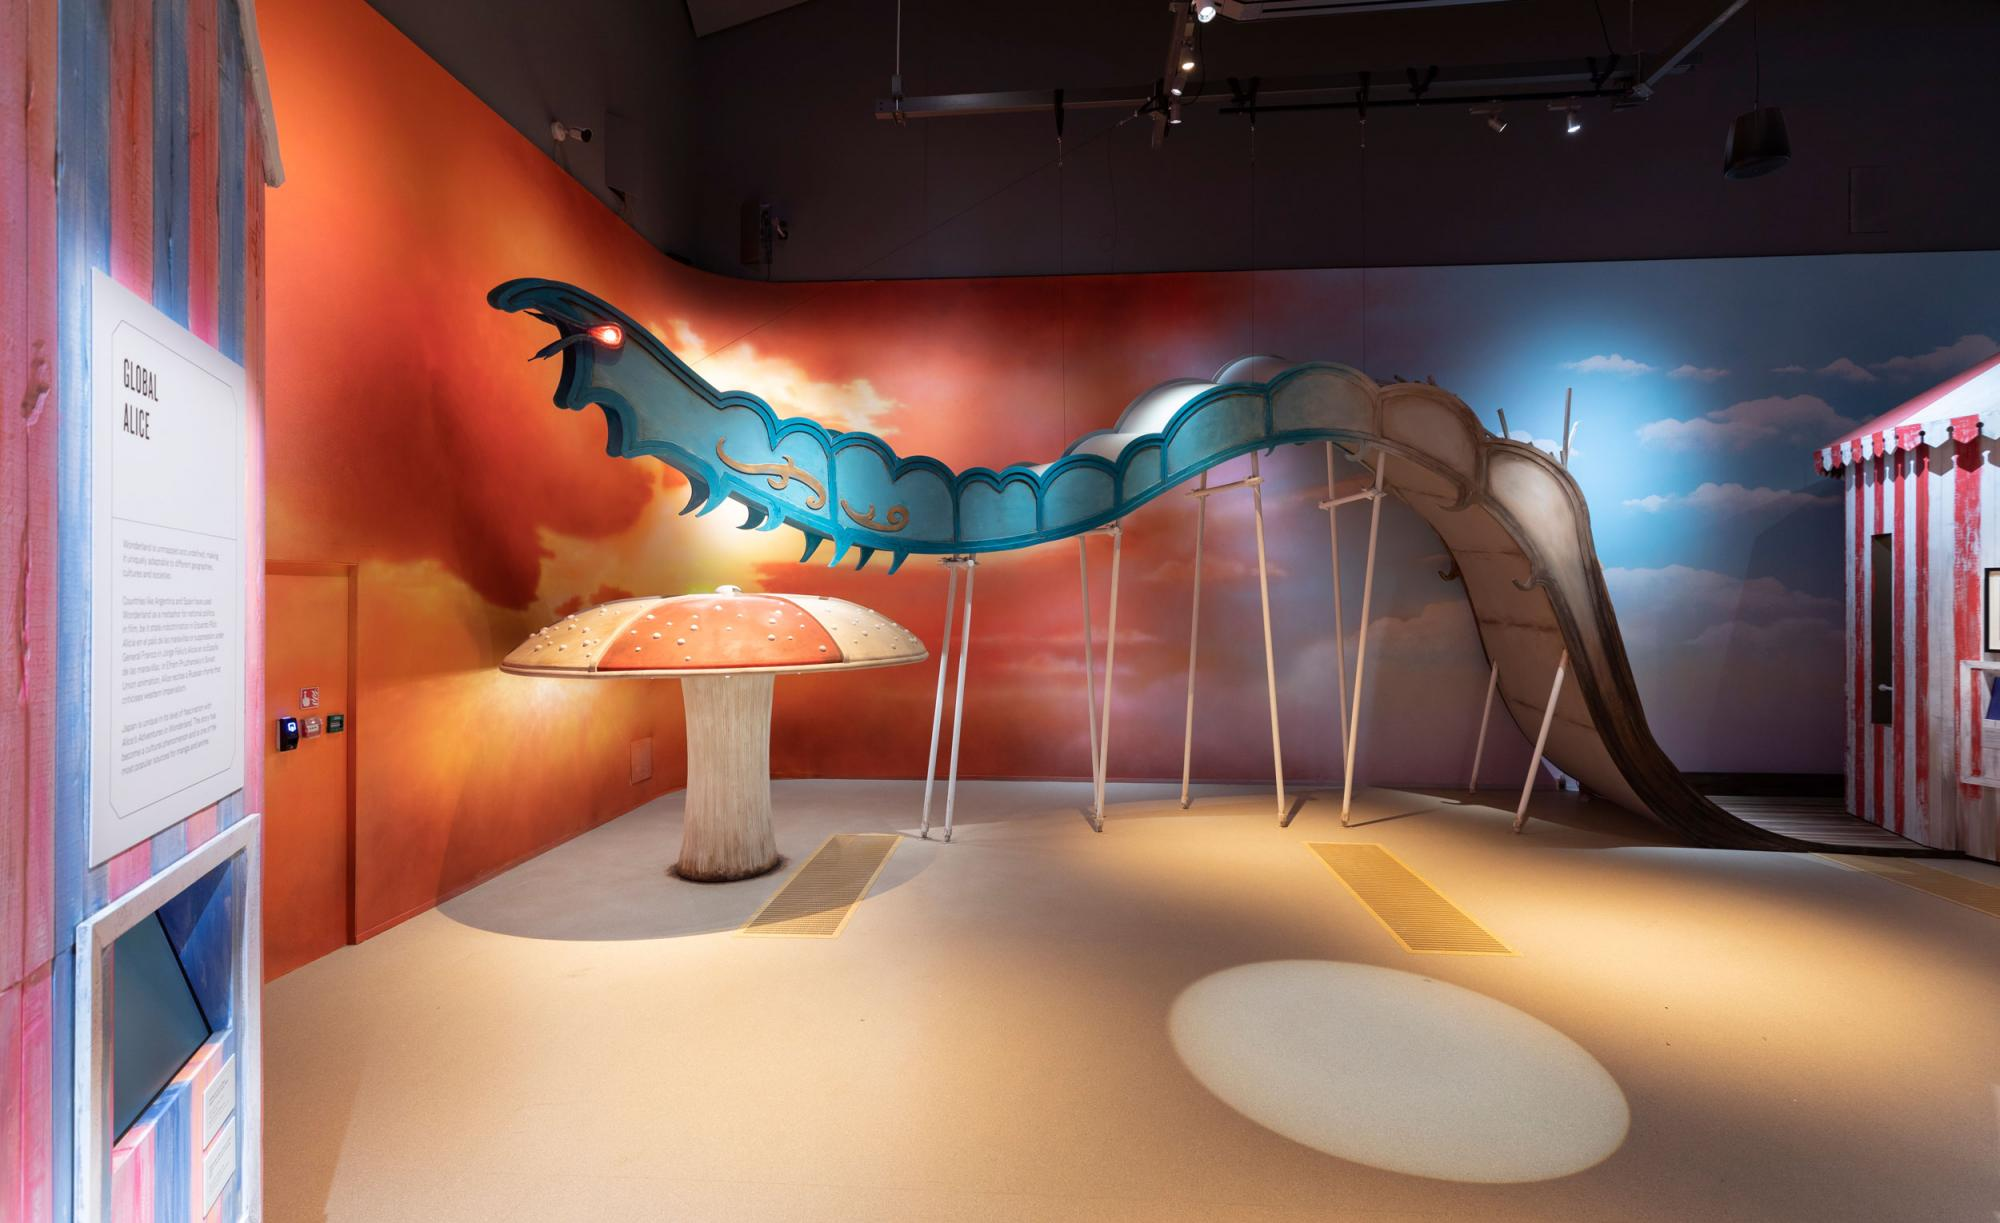 Alice-Curiouser-and-Curiouser,-May-2021,-Installation-Image-(c)-Victoria-and-Albert-Museum,-London-(31).jpg